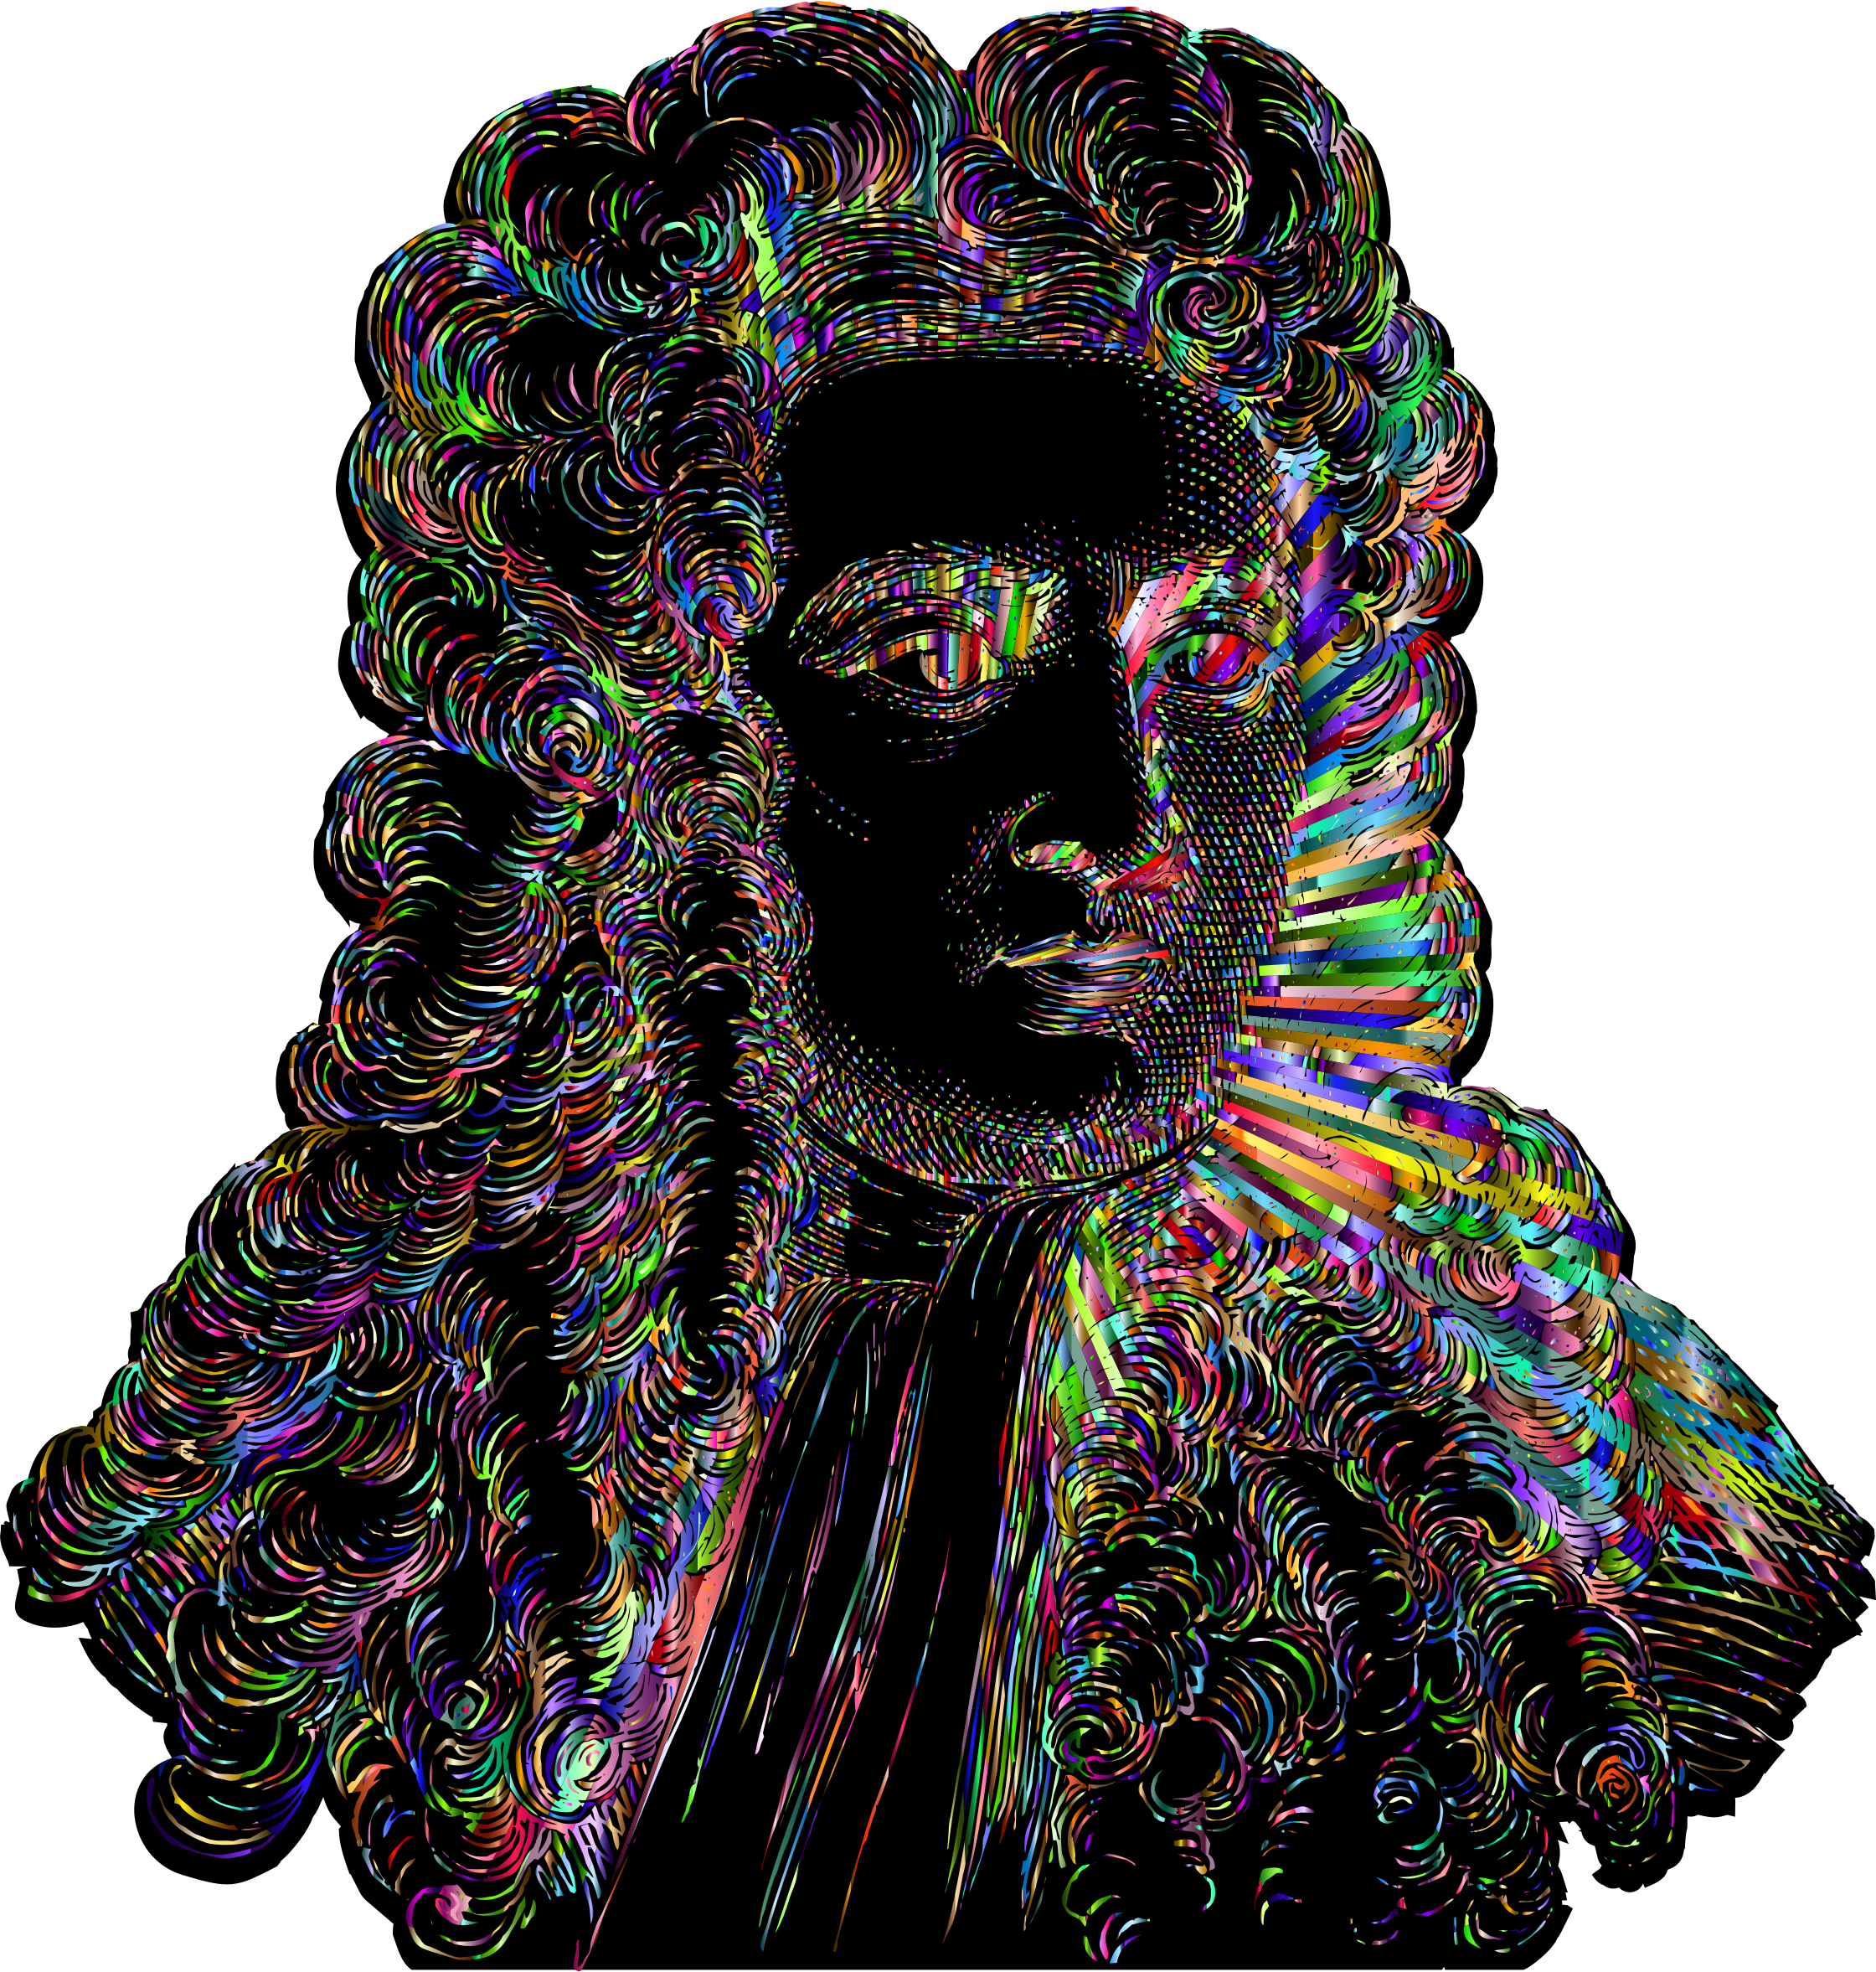 Chromatic Isaac Newton Portrait 2019 by GDJ